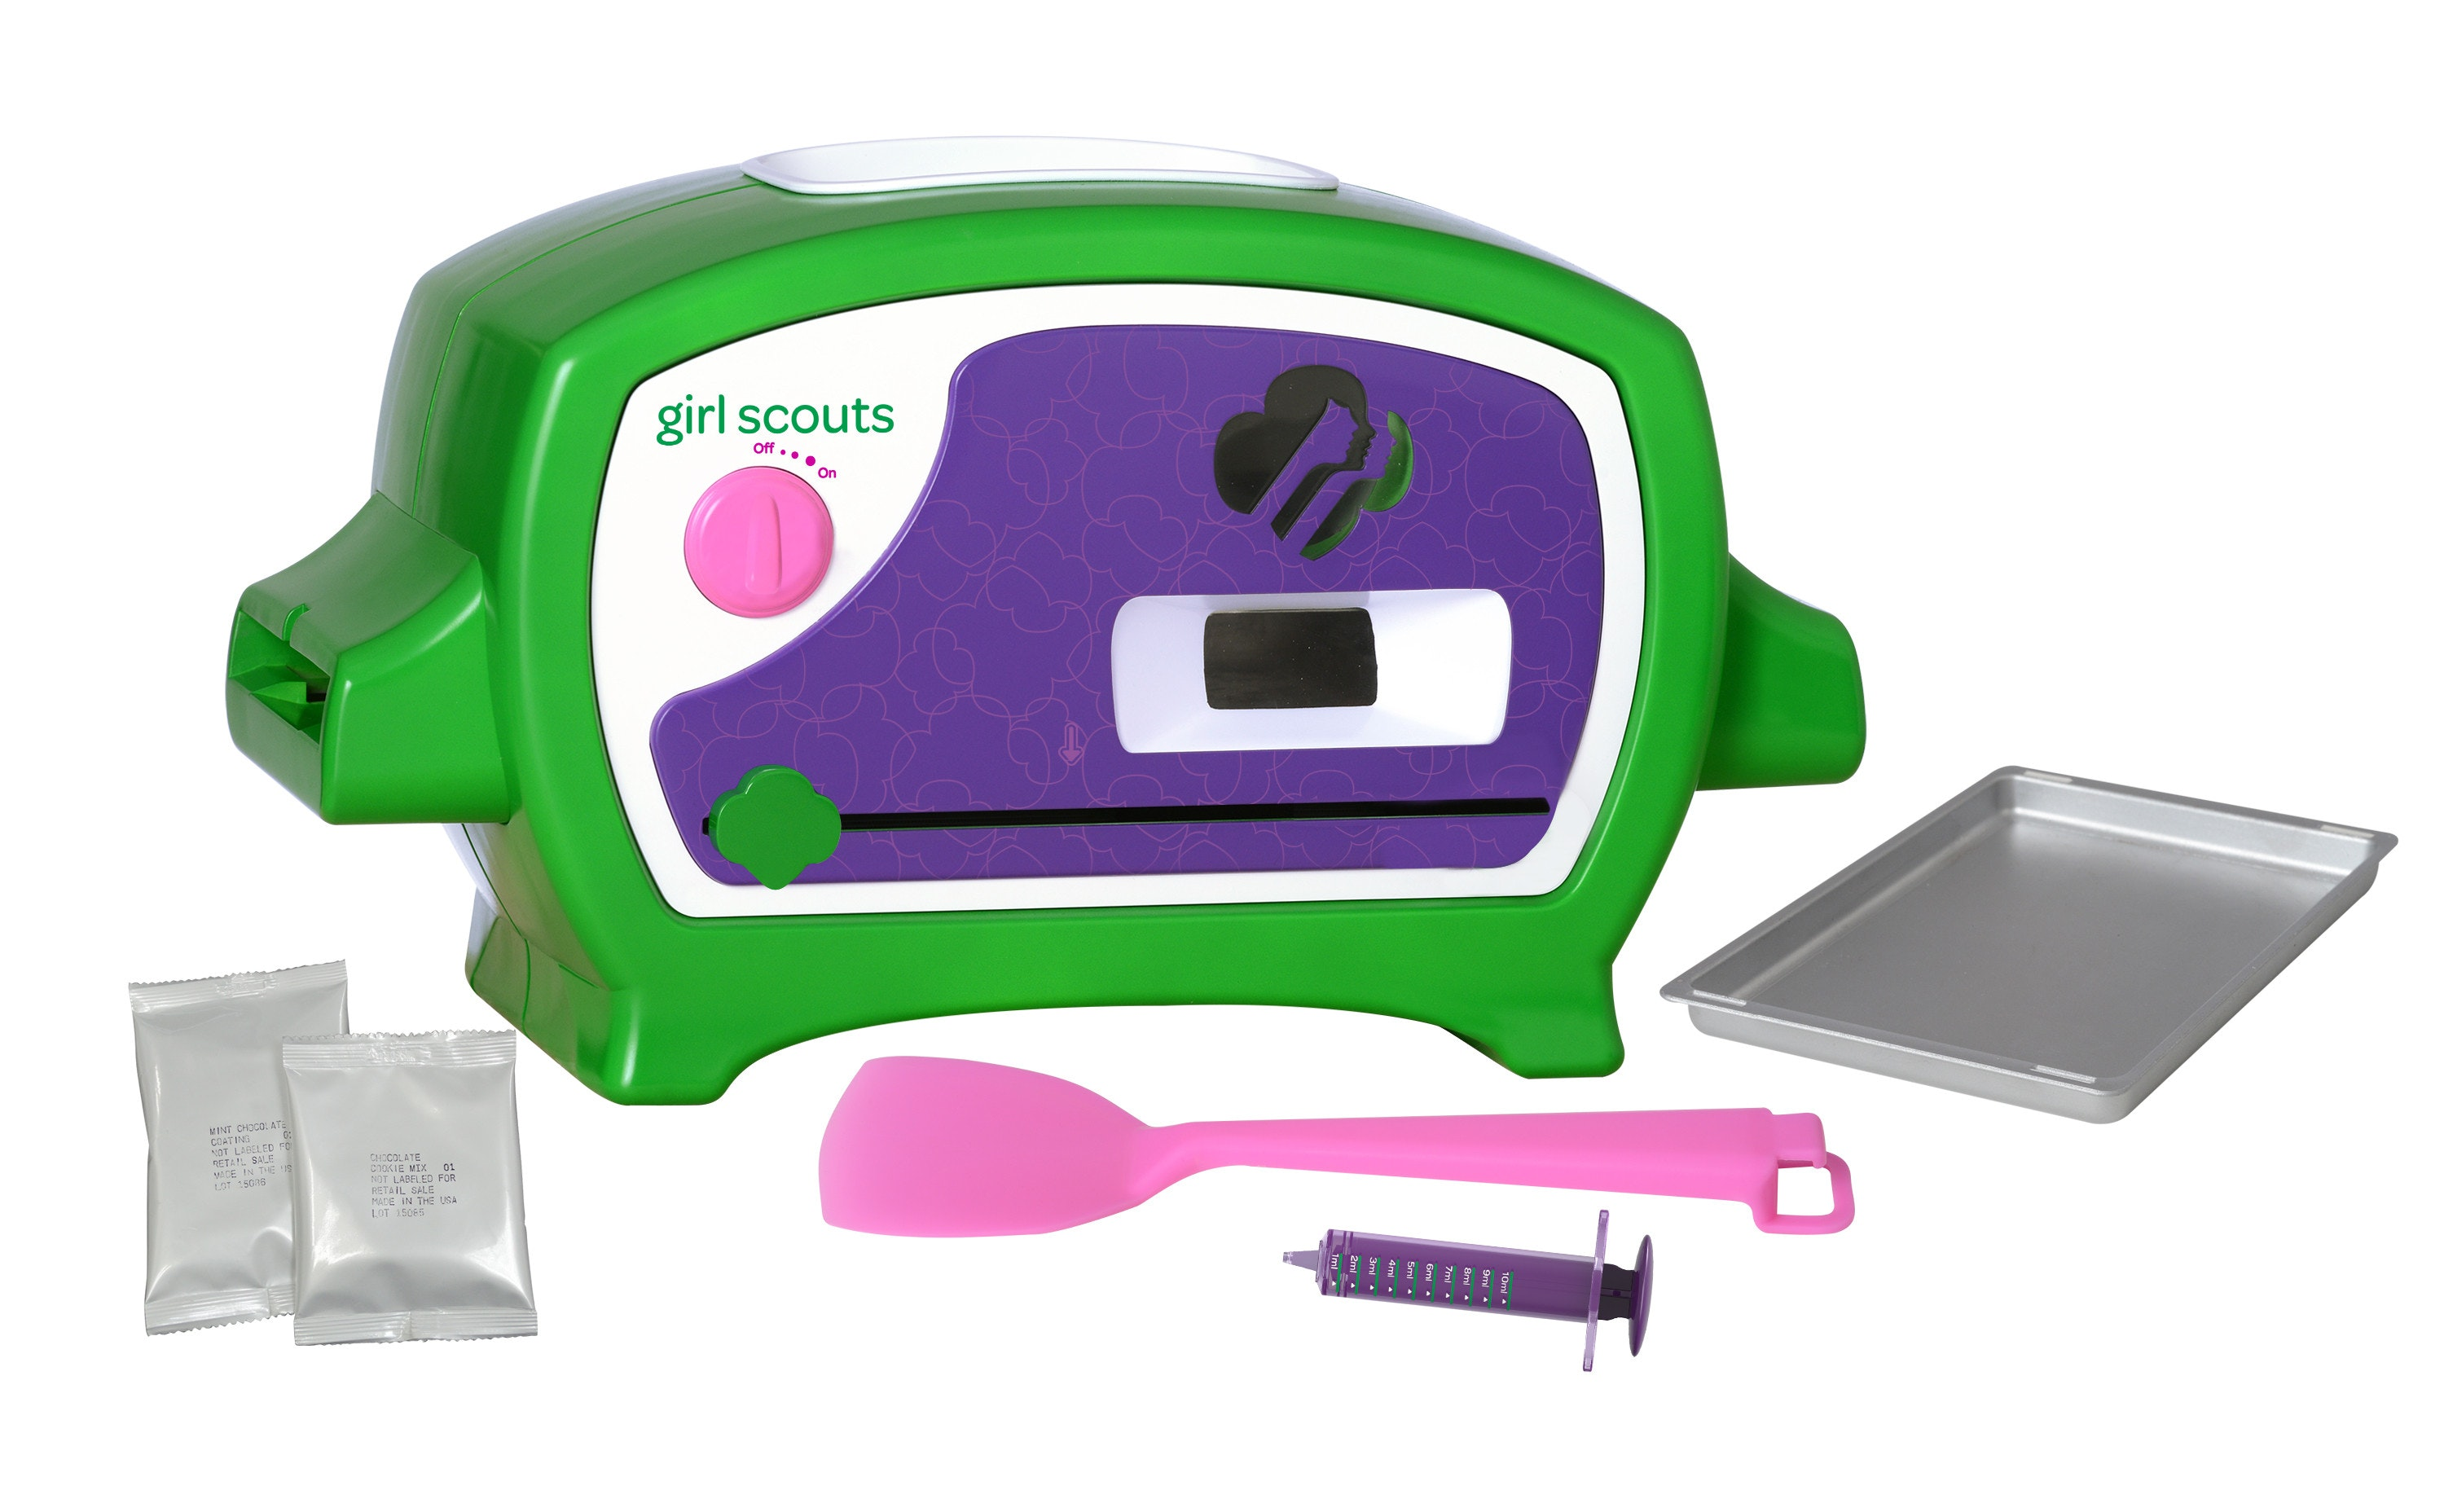 Girlscout cookieoven giveaway